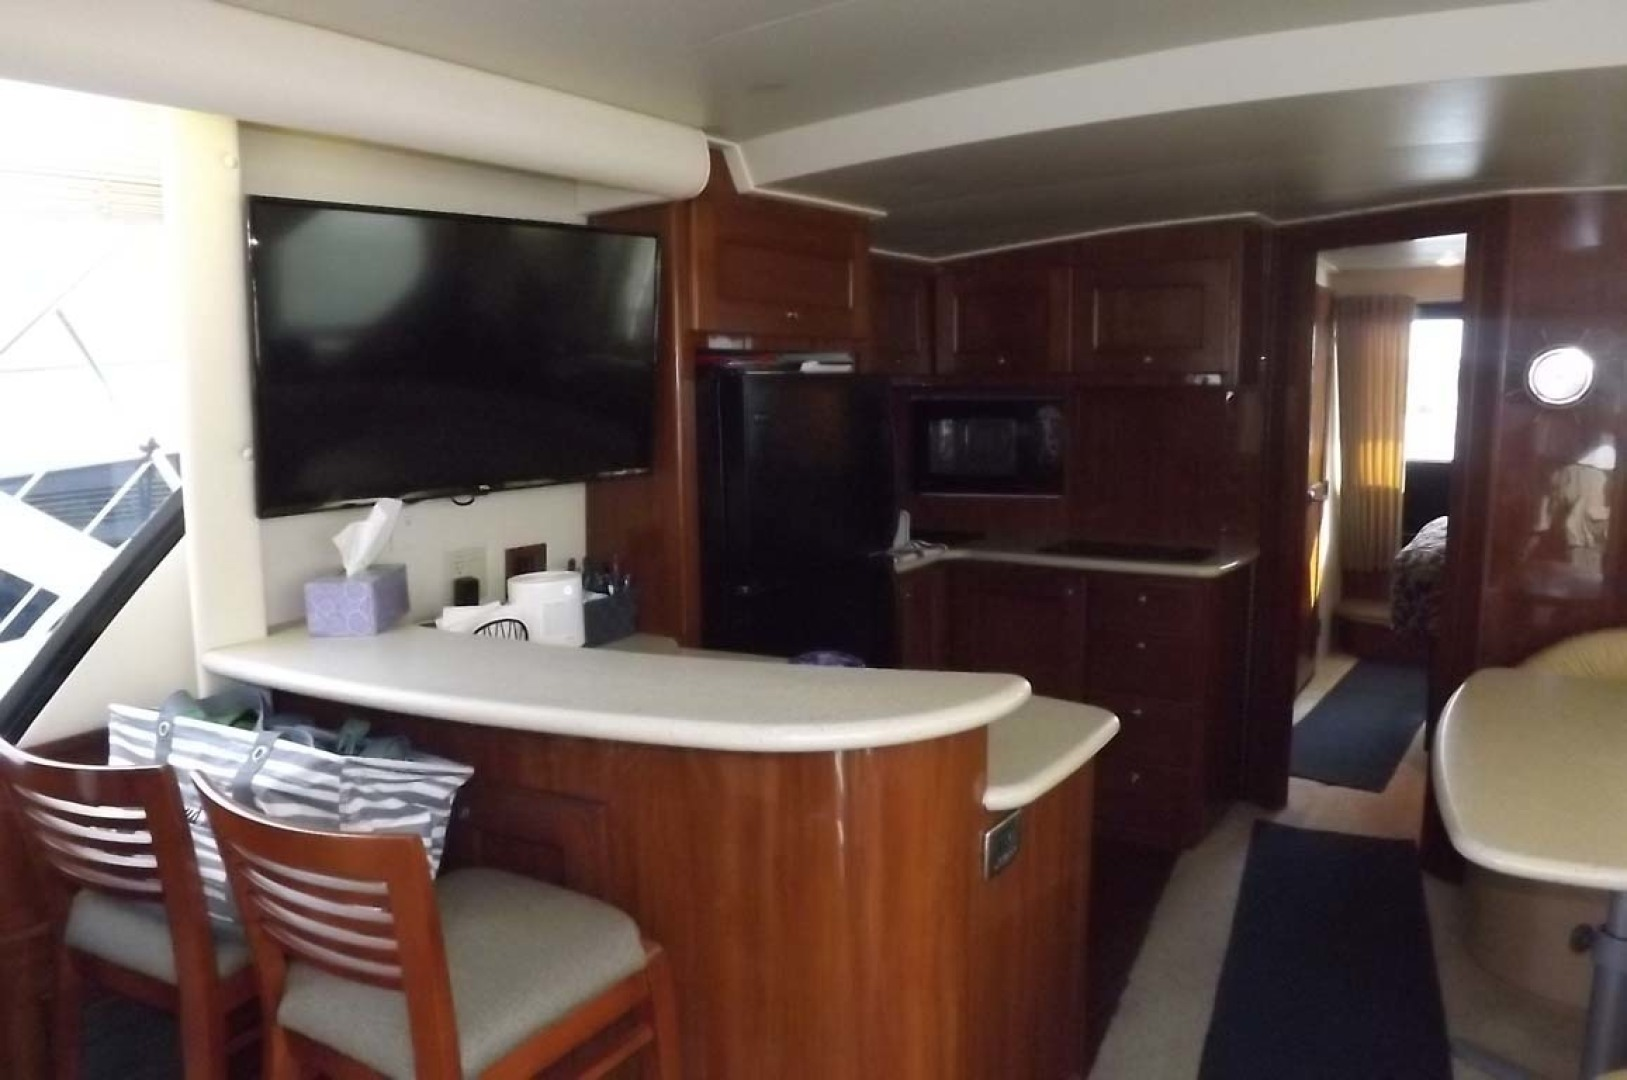 Bluewater Yachts-5200 2006 -Mount Pleasant-South Carolina-United States-Galley, Breakfast Counter-1412936 | Thumbnail